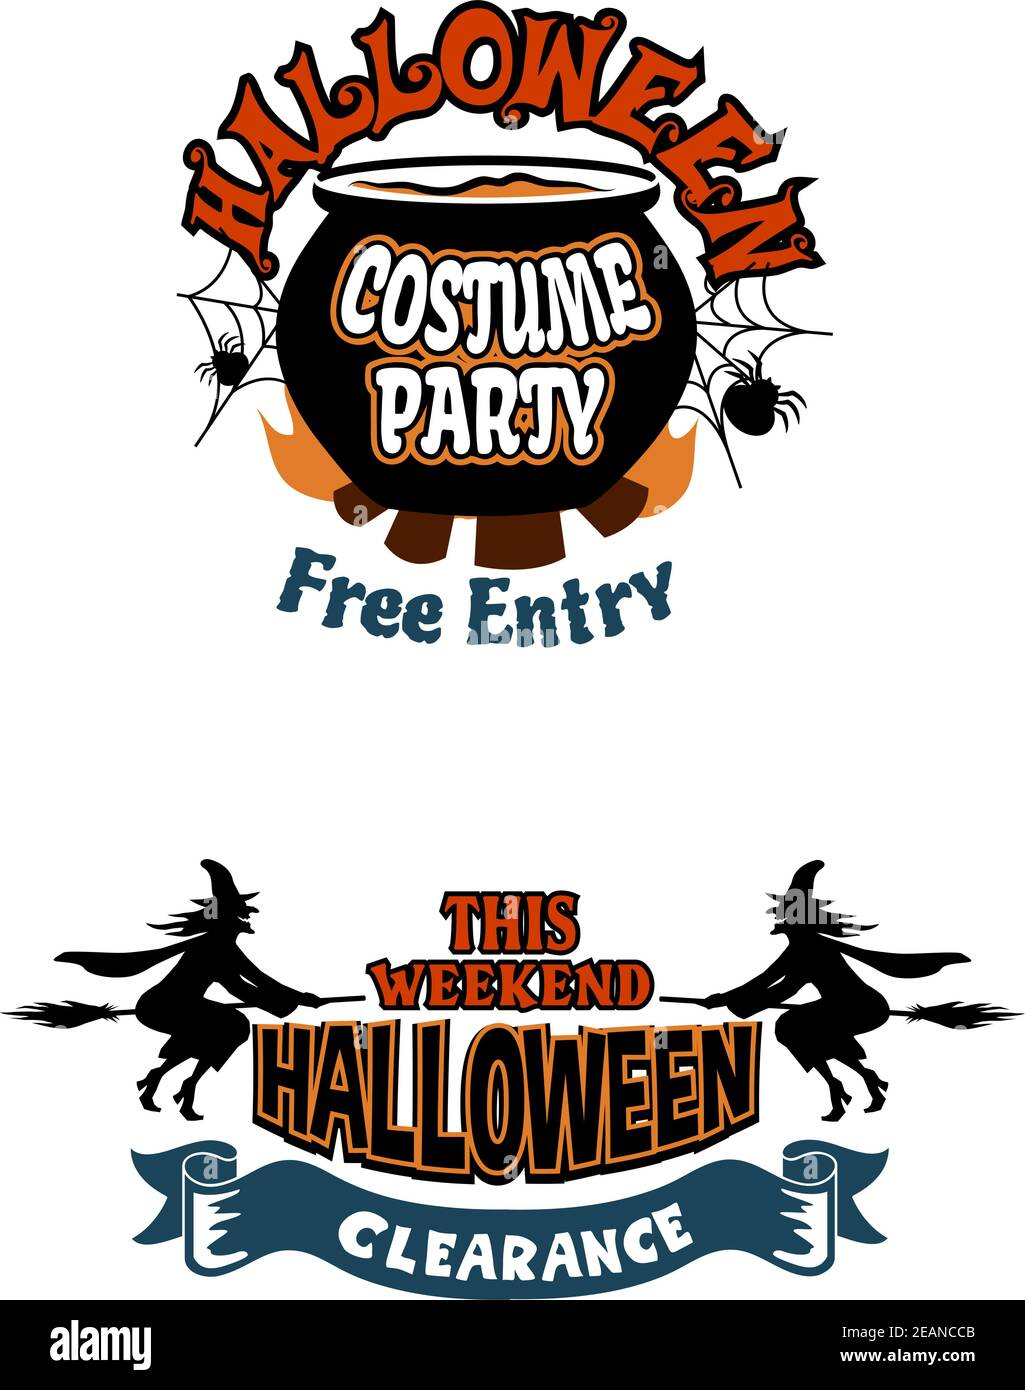 Skeleton ring toss 00:59 ske. Halloween Holiday Invitations With Witch Fire Spider Web Banner Pot Or Bowler And Text Halloween Costume Party Free Entry Stock Vector Image Art Alamy